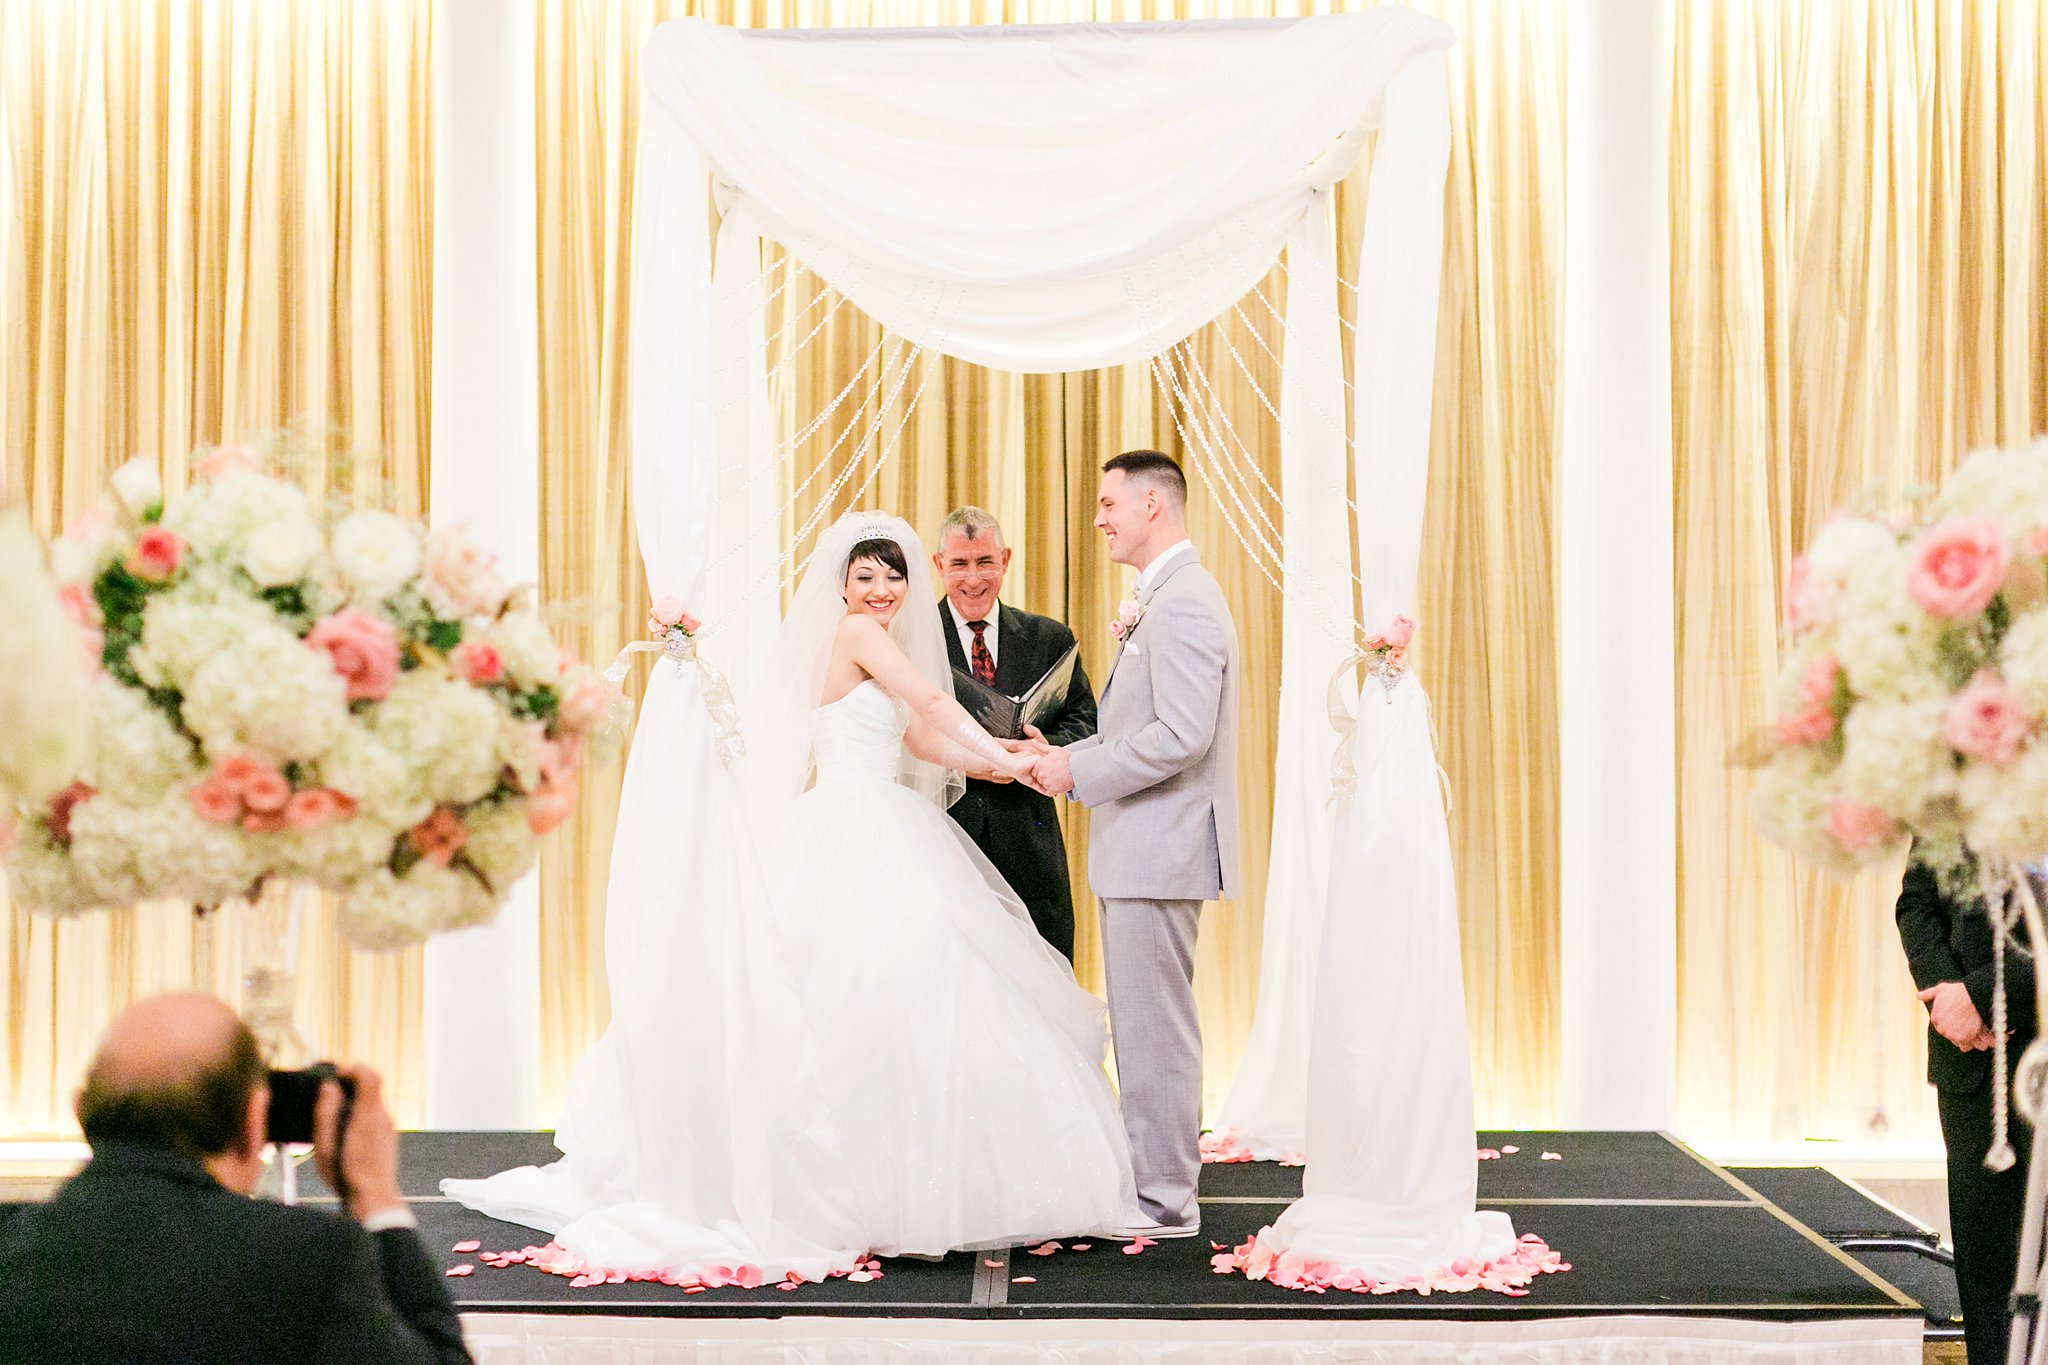 Mayflower Hotel Wedding Photos DC Pink & Gold Winter Wedding Tori & Tyler-244_photo.jpg